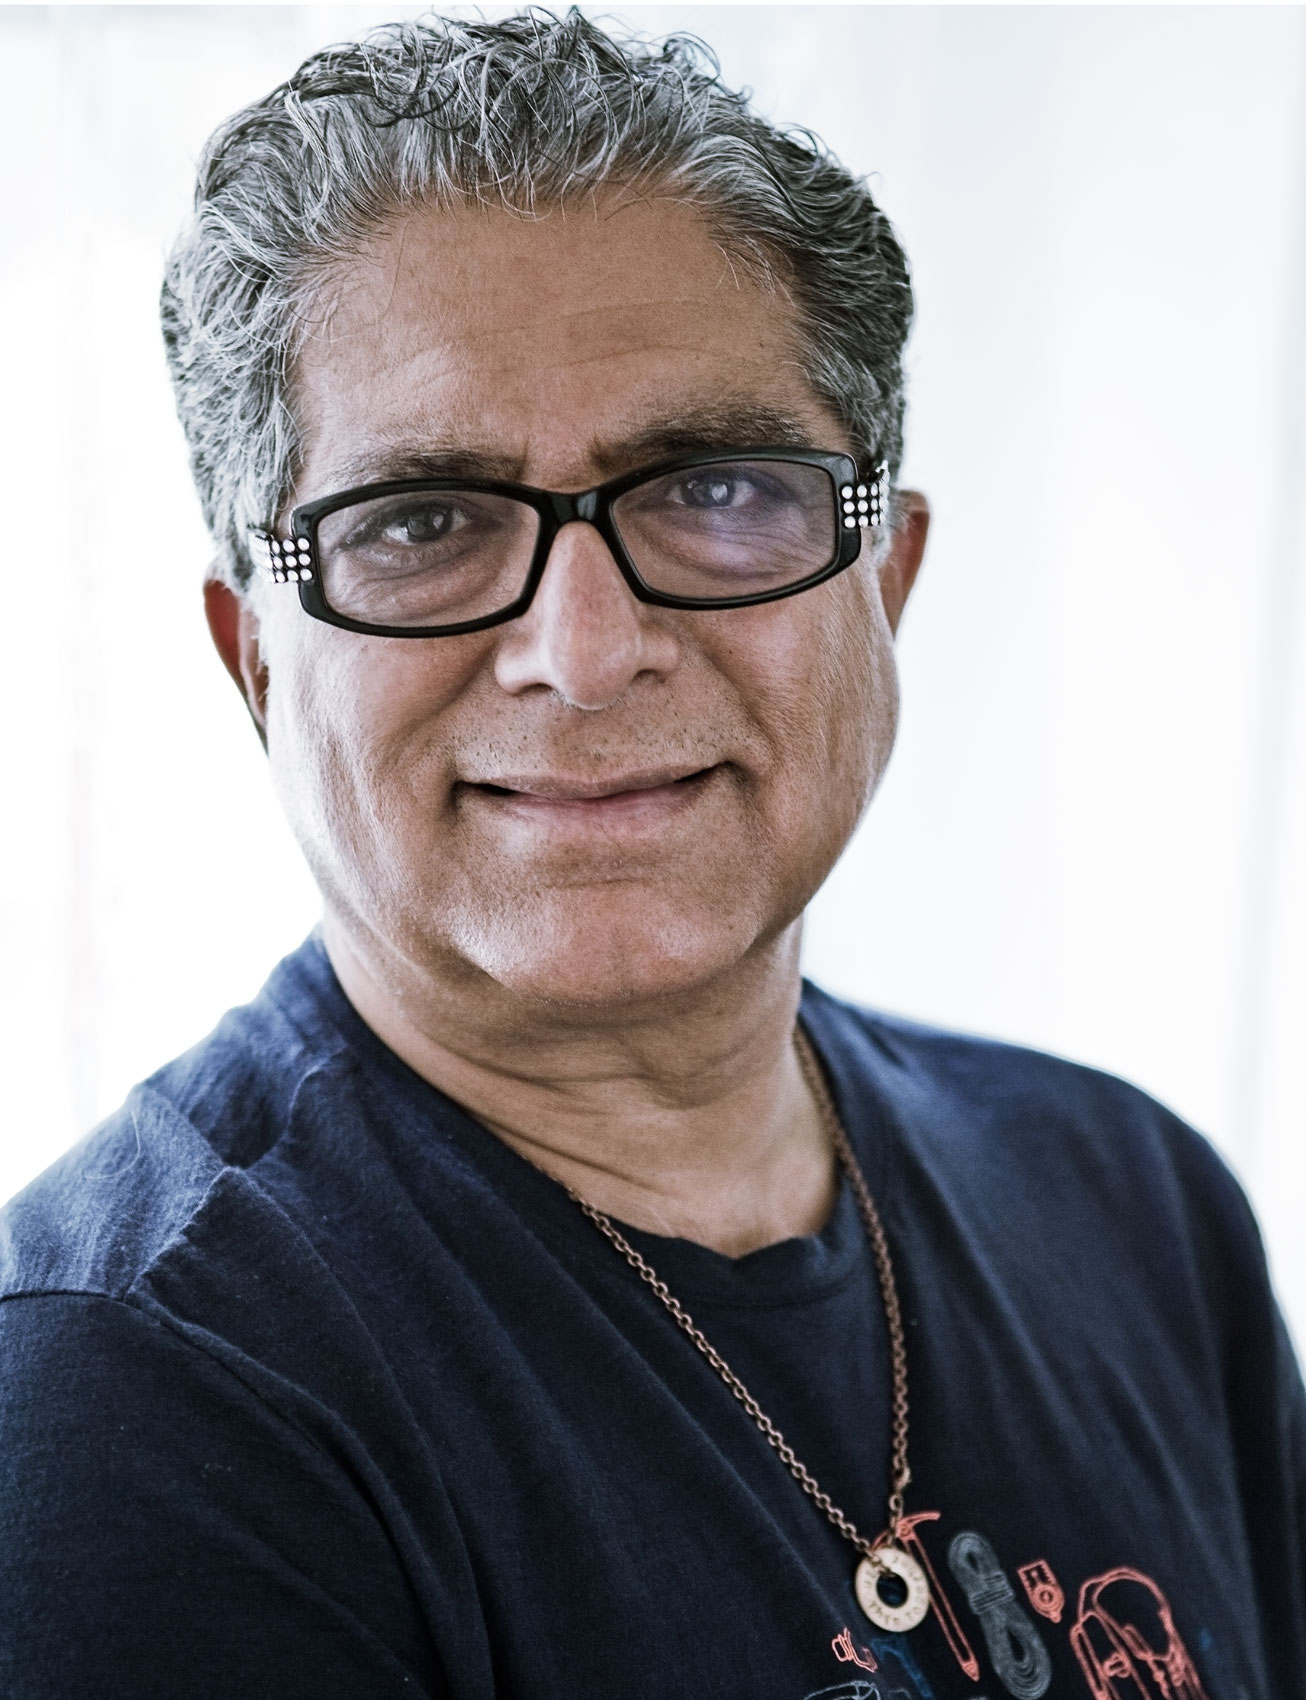 Portrait of Deepak Chopra by New York Portrait Photographer Michael Weschler